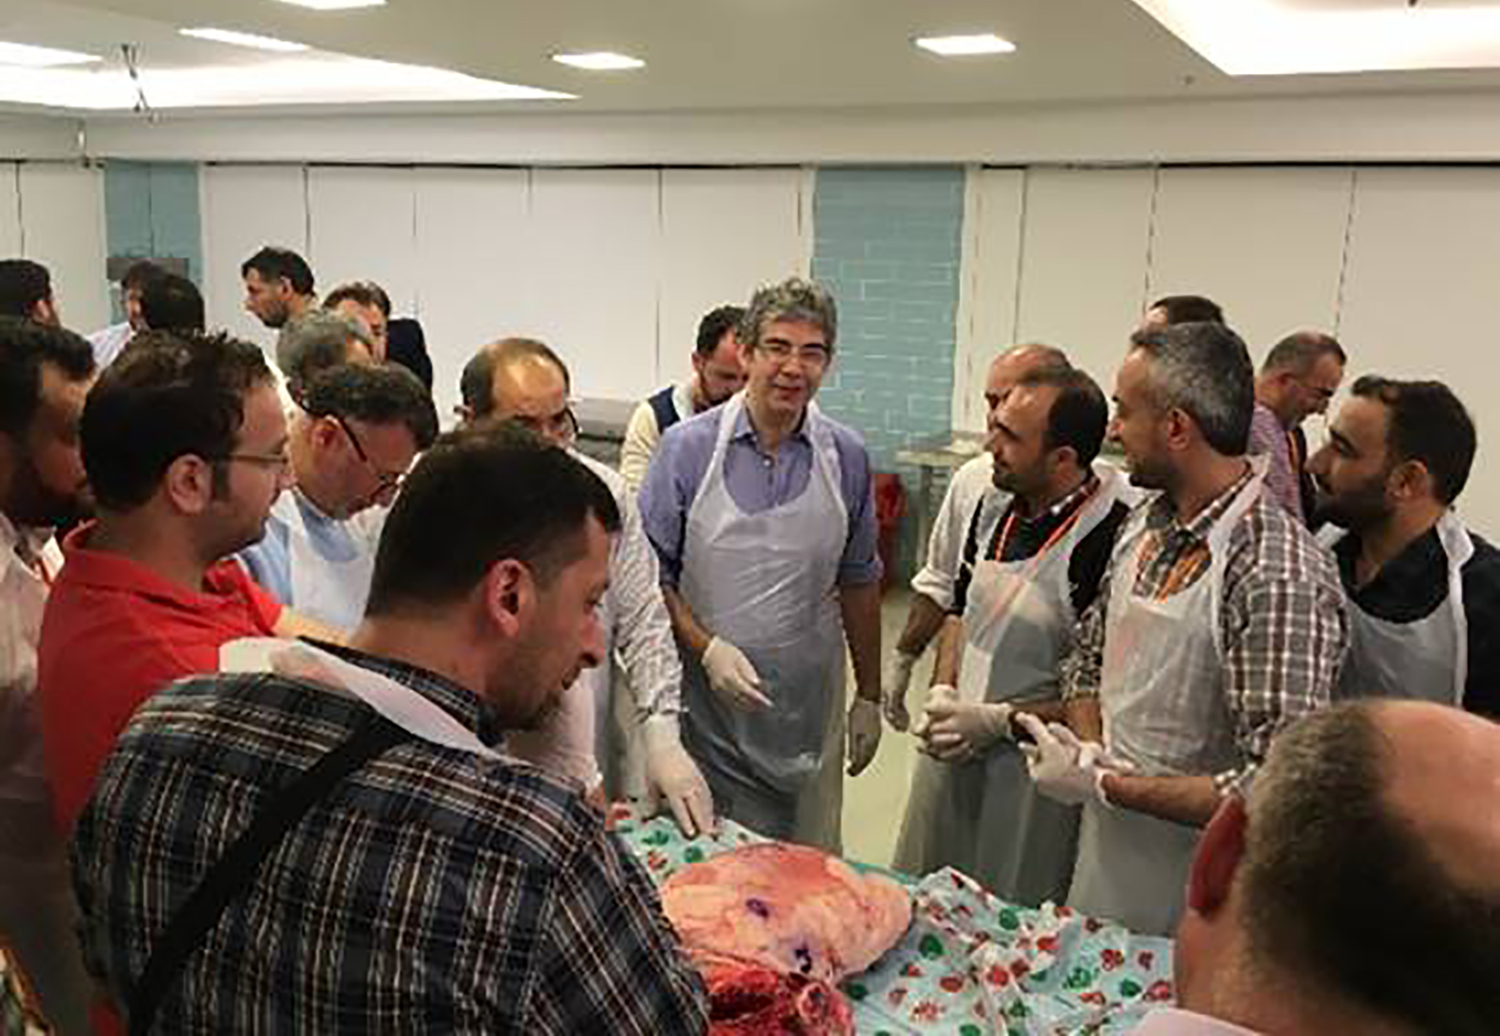 David Nott Foundation concludes first surgical training course in Turkey